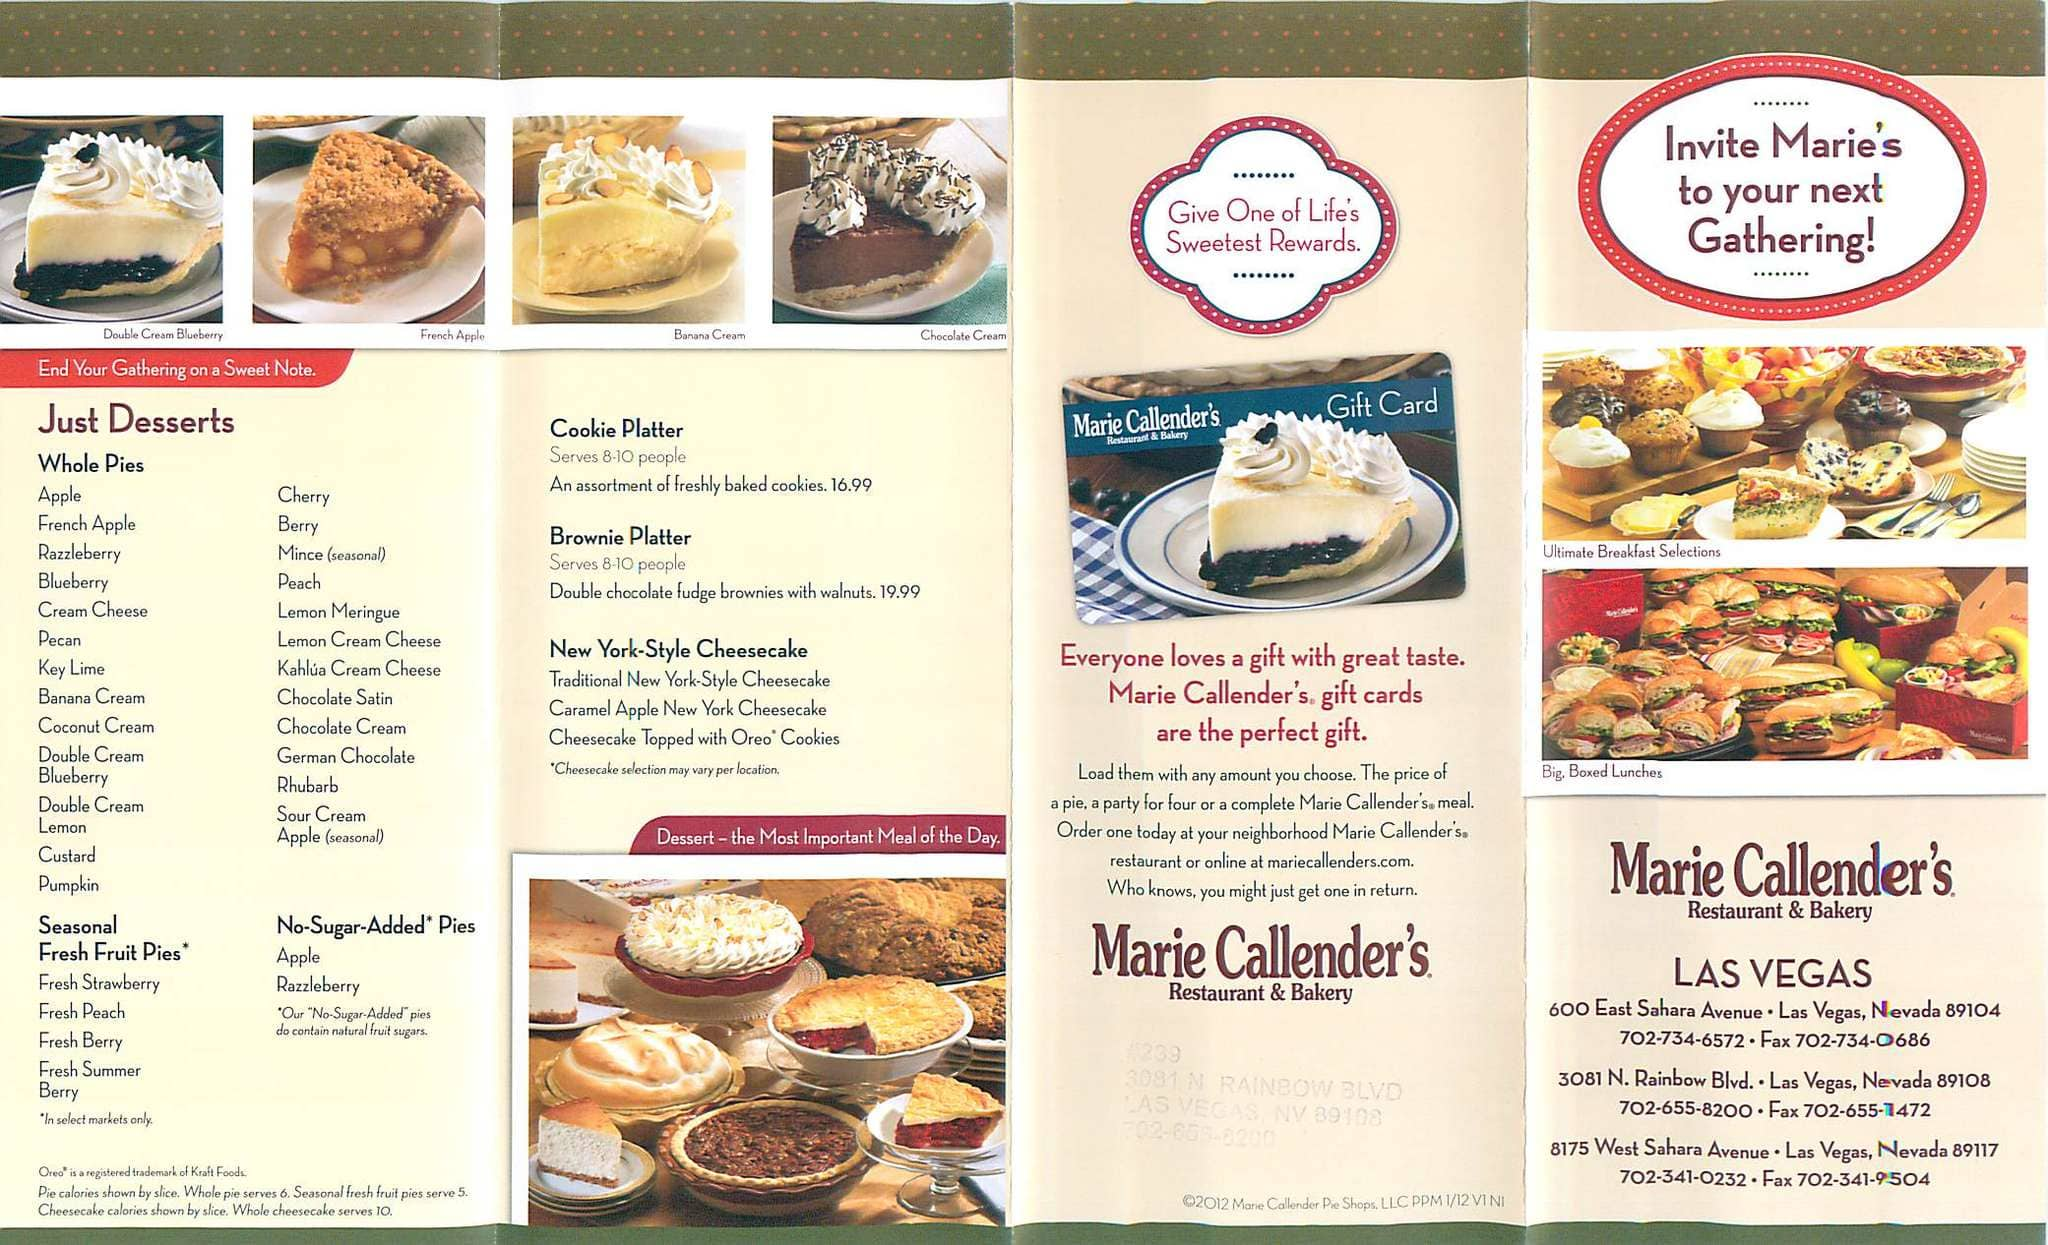 The legacy of Marie Callender began in the early s in Orange County, California, when Marie, an accomplished baker, first launched her legendary pie business, delivering freshly baked pies .